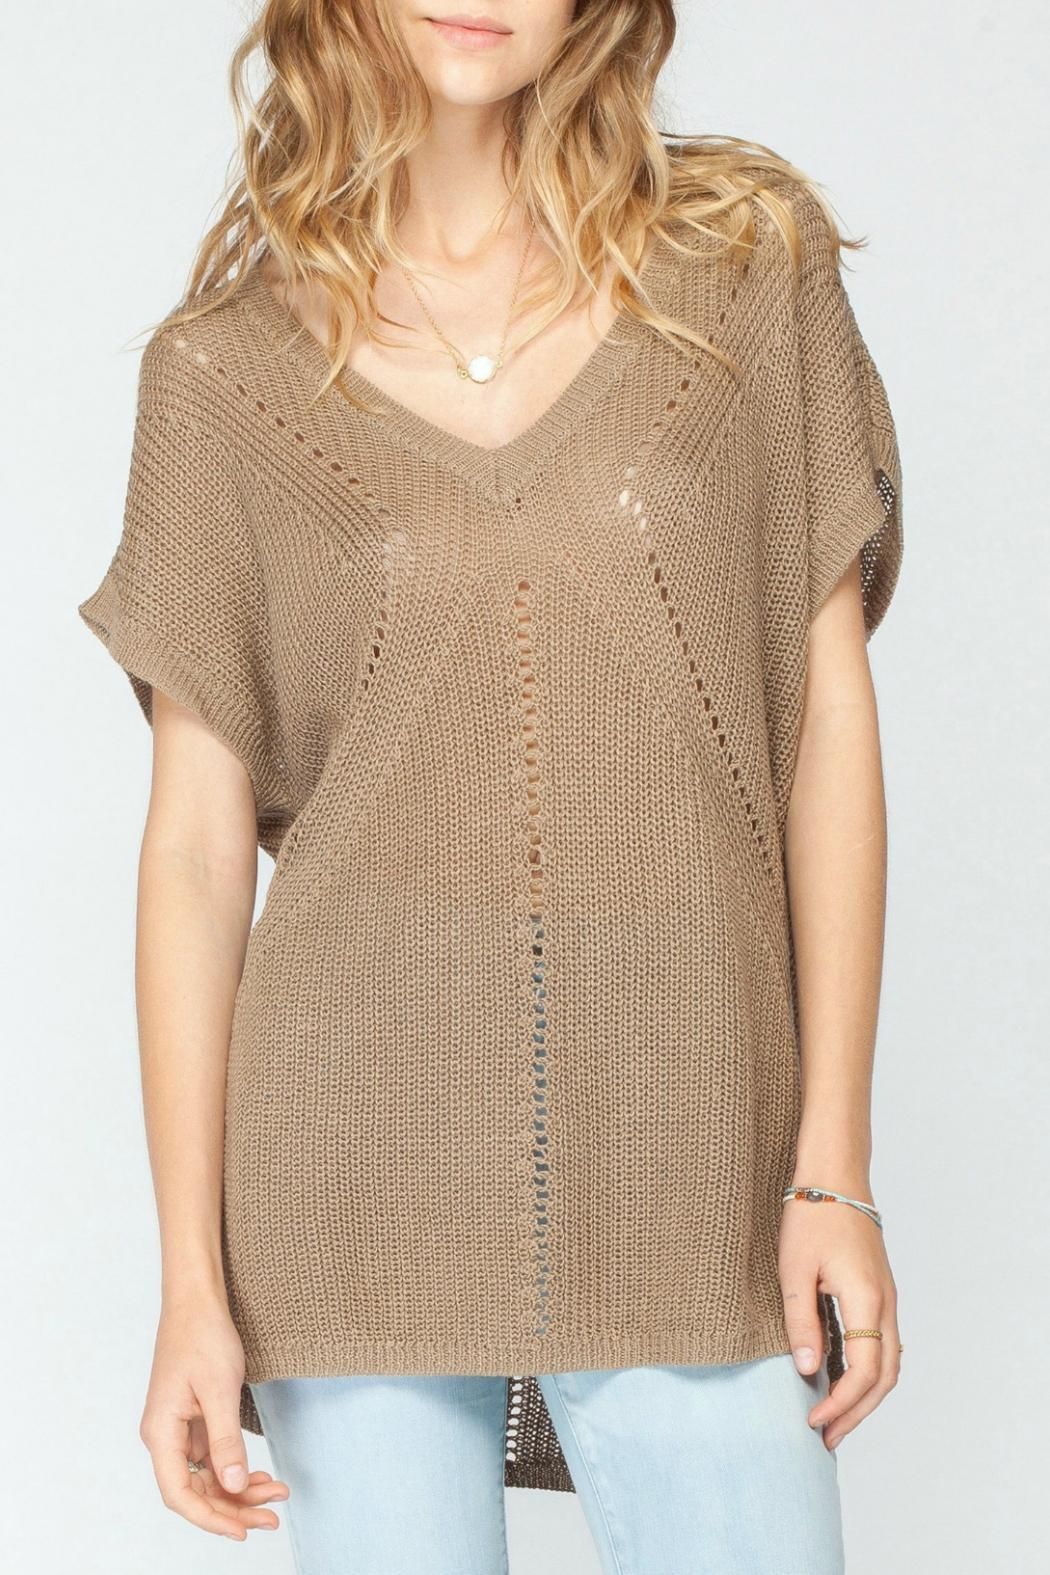 Gentle Fawn Brown Short Sleeve Sweater from Canada by Envy ...